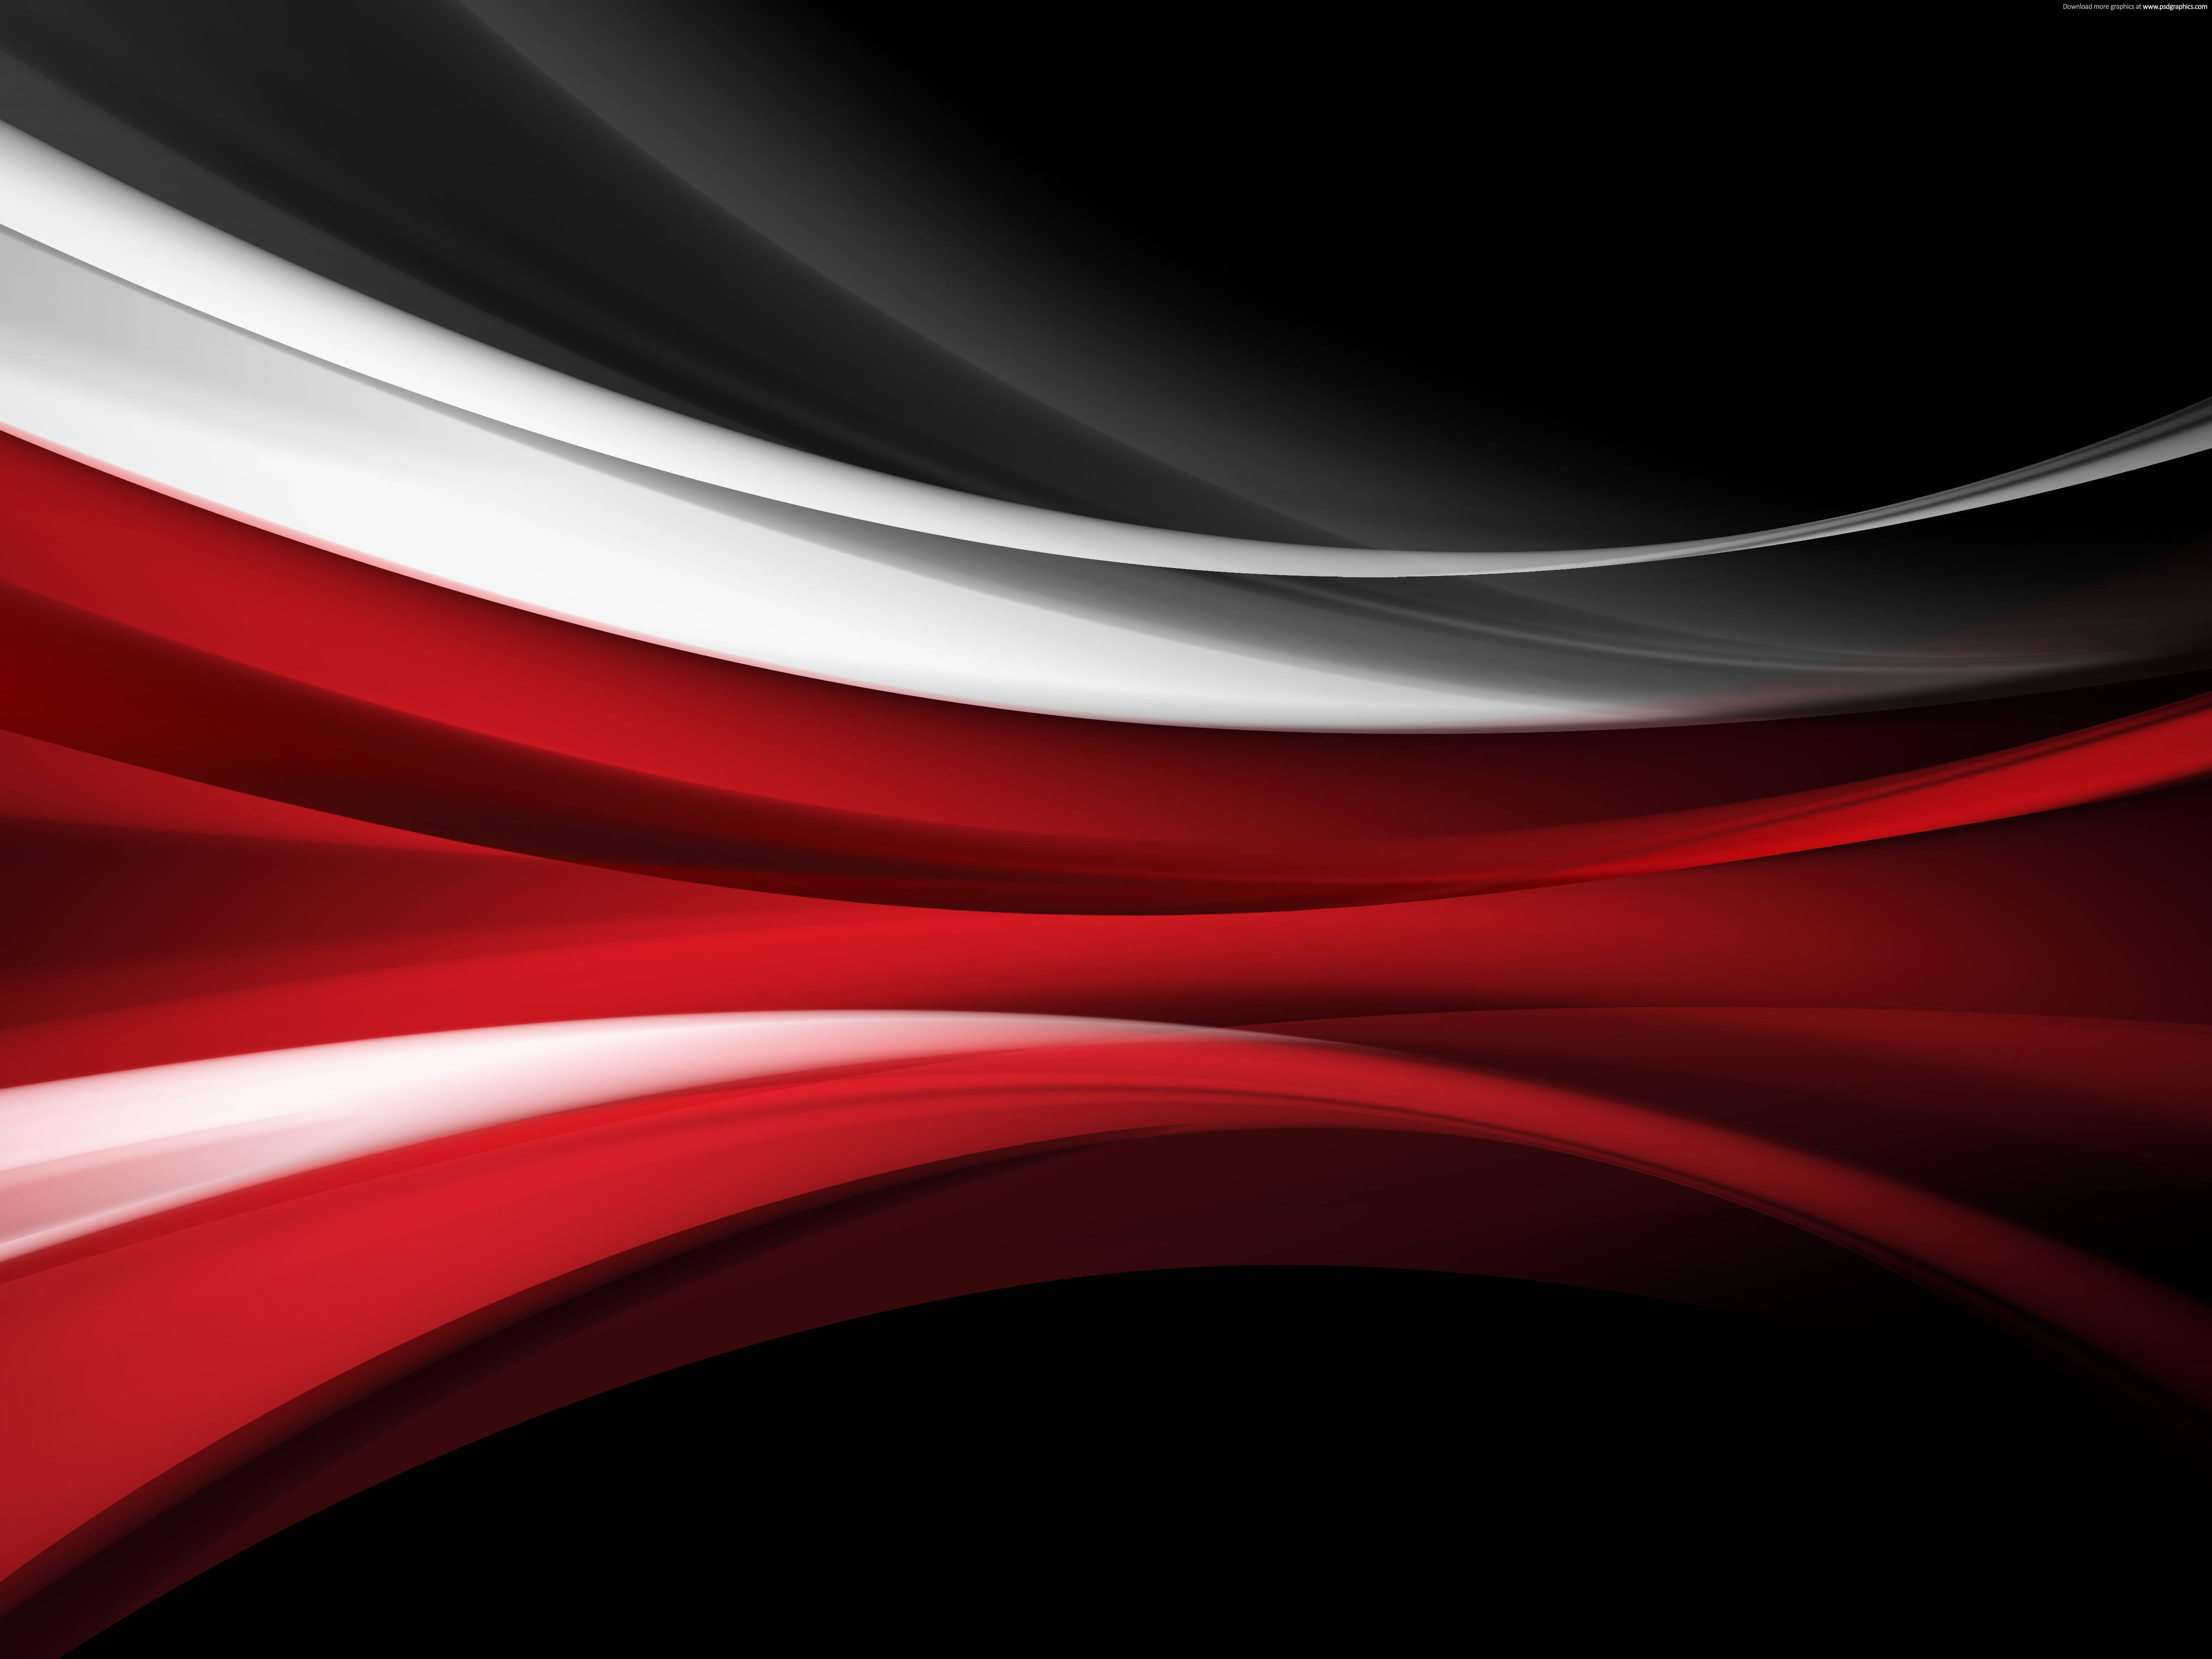 black white and red backgrounds wallpapersafari. Black Bedroom Furniture Sets. Home Design Ideas